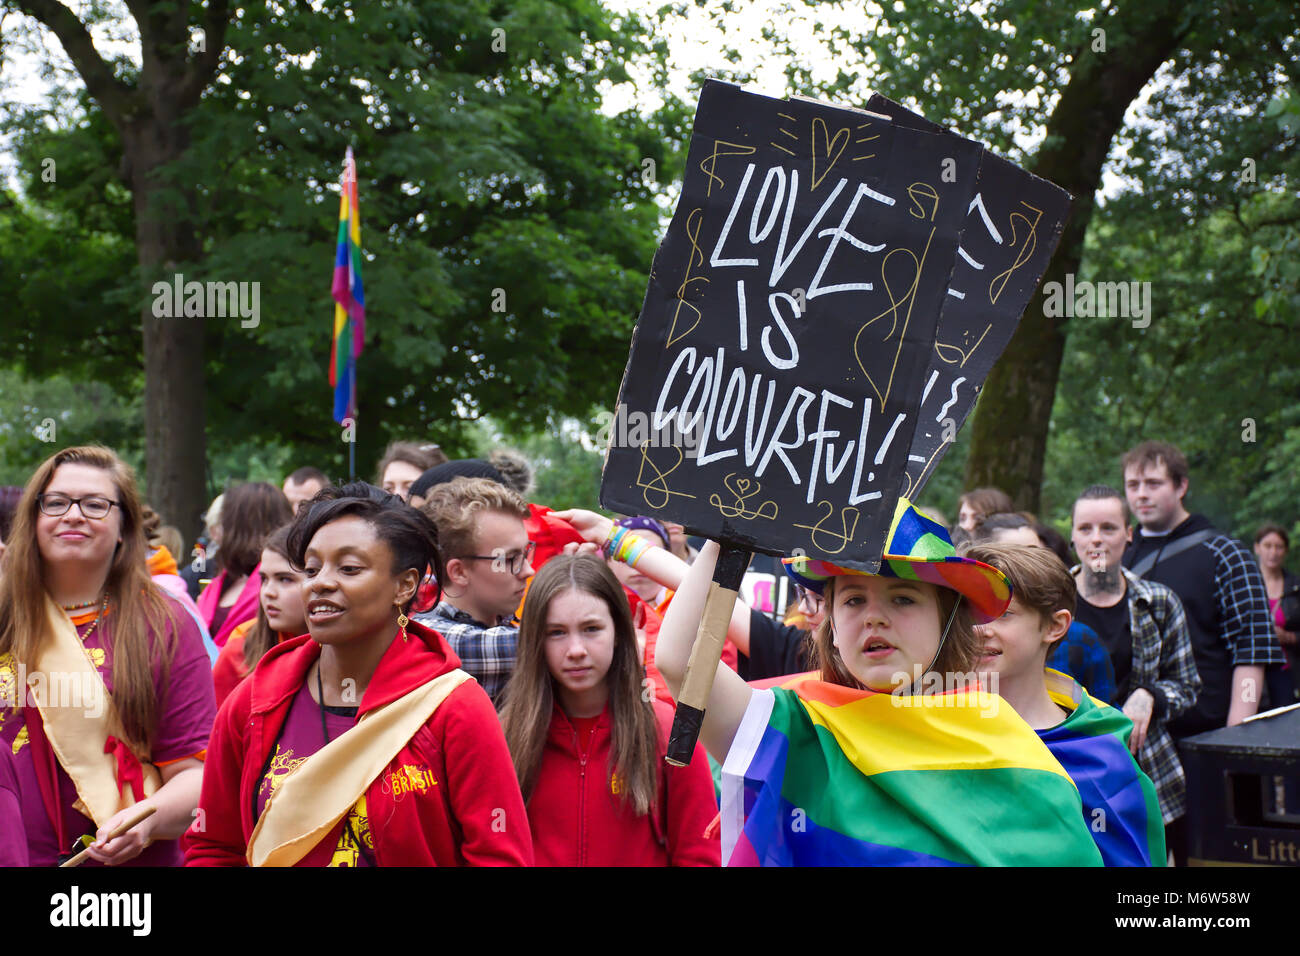 LGBT pride event in Hanley park,Stoke on Trent,Uk.24th June,2017.People taking part in pride parade. - Stock Image